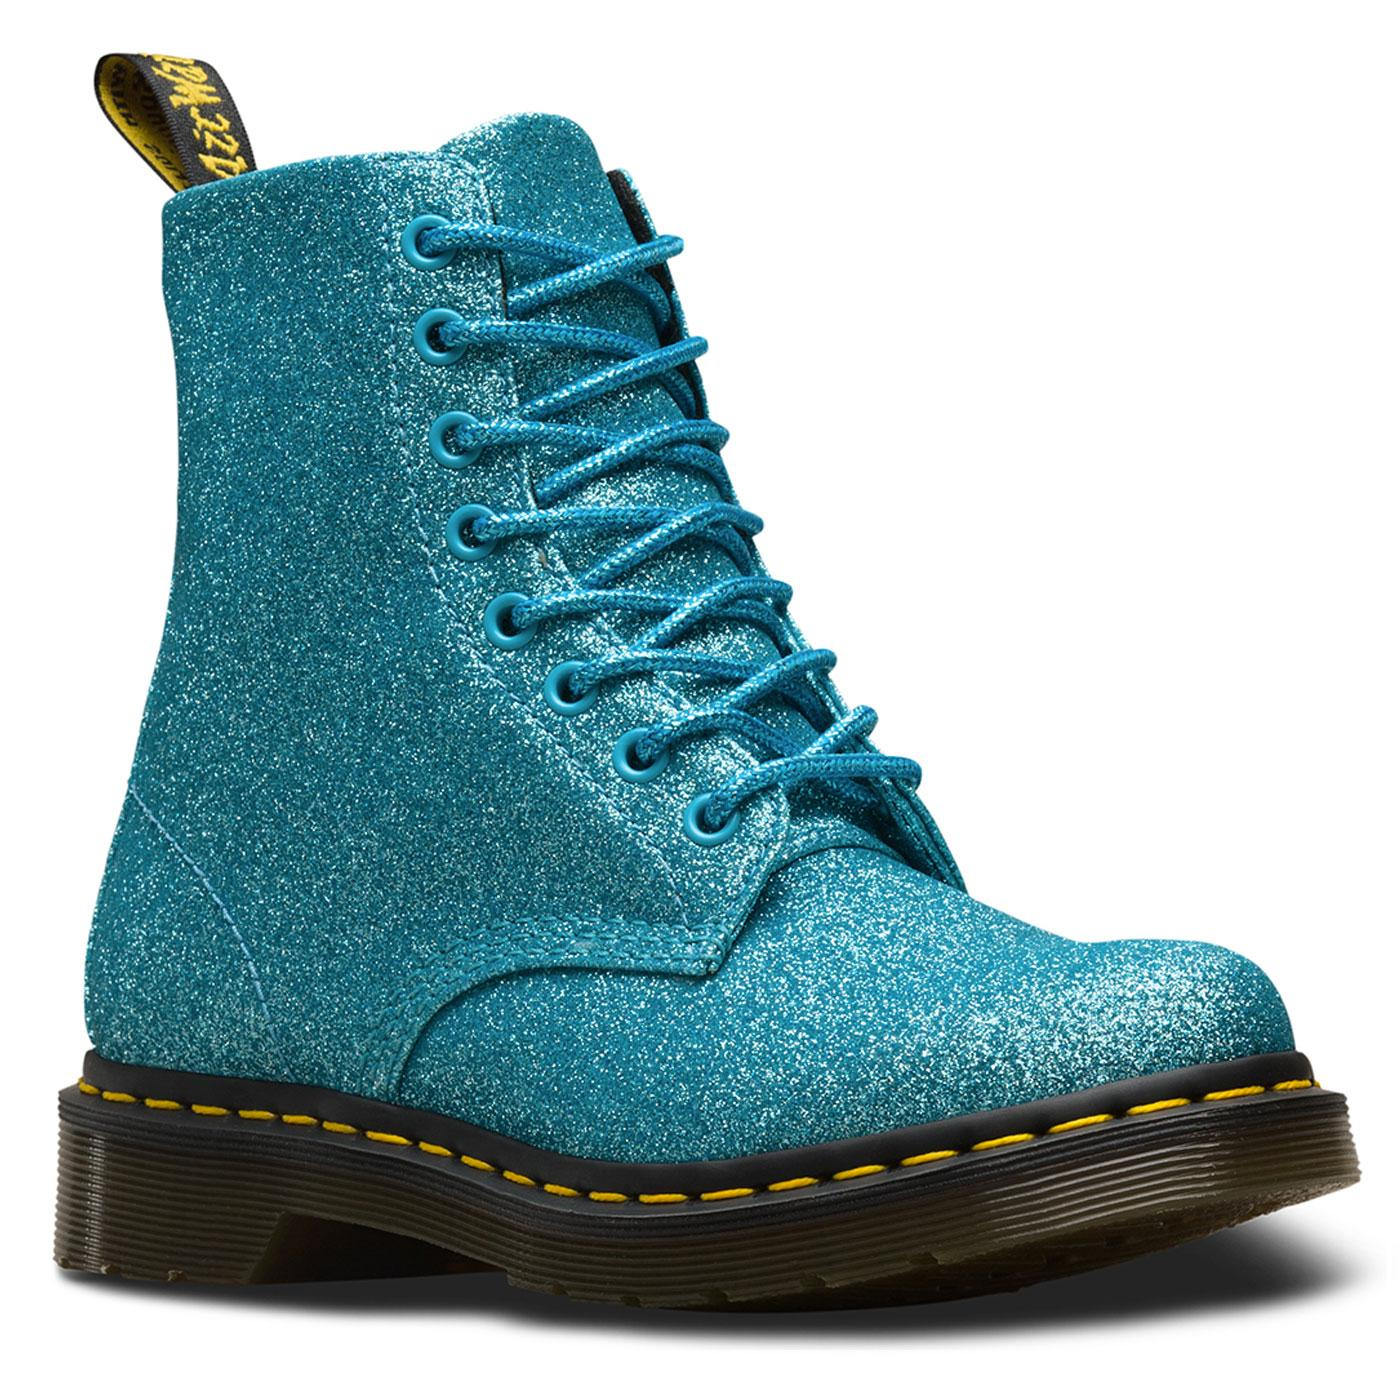 Pascal DR MARTENS 1460 Boots in Turquoise Glitter